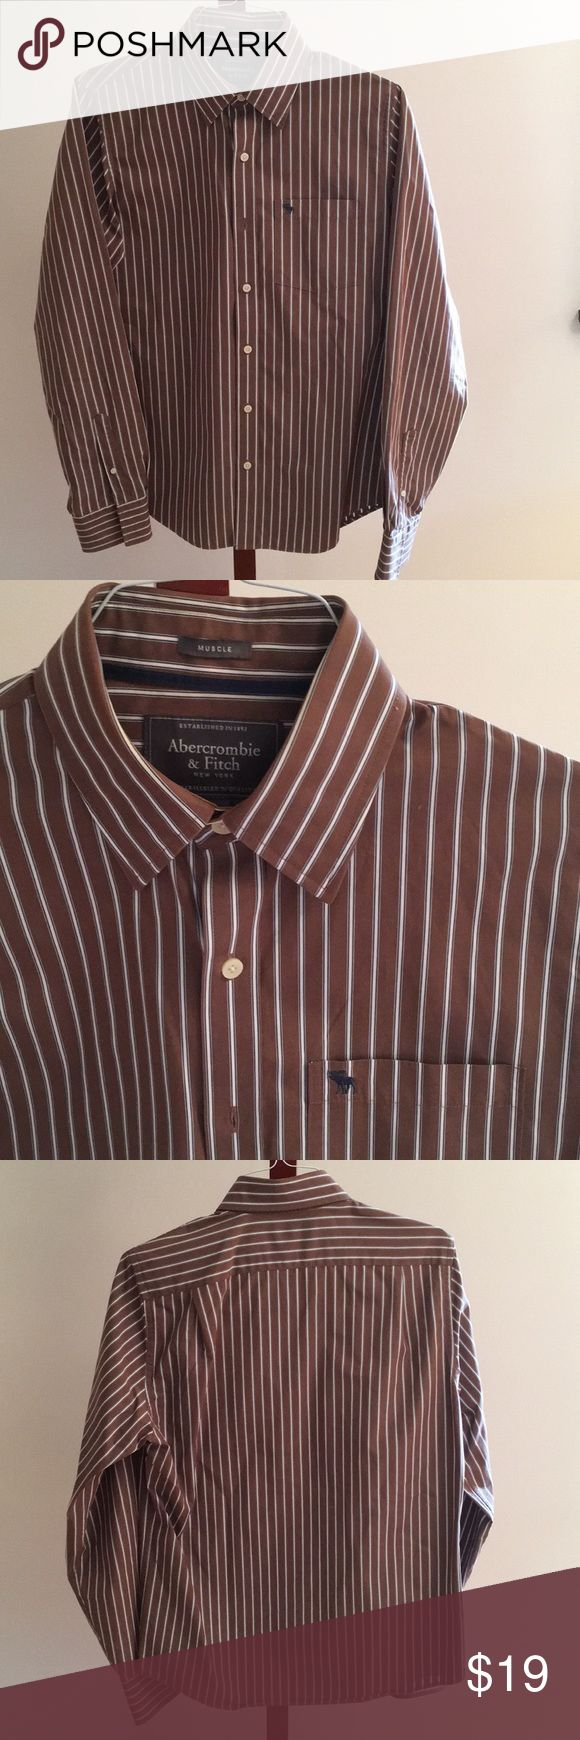 Abercrombie men's long sleeves shirt 100% cotton... in excellent condition Abercrombie & Fitch Shirts Casual Button Down Shirts